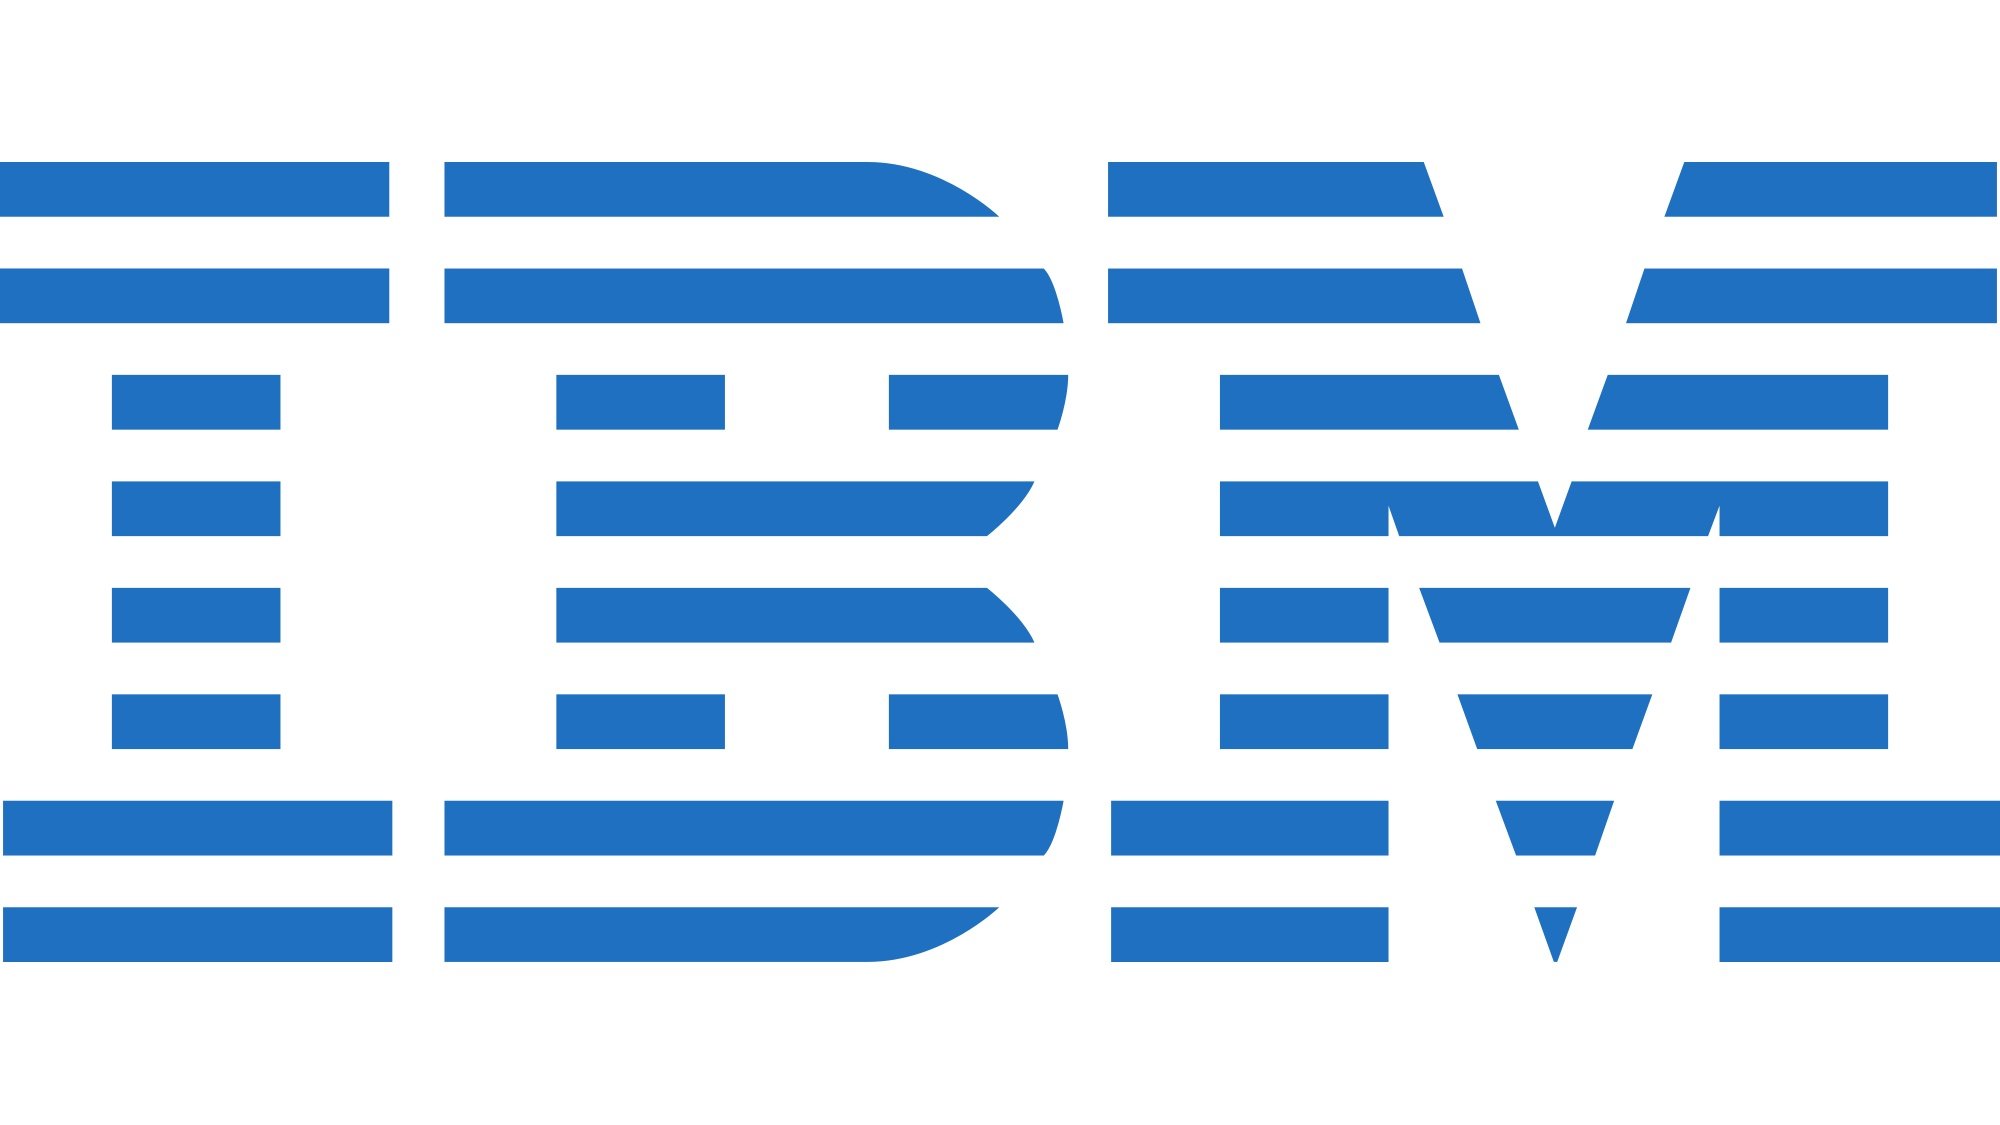 logo ibm png transparent logo ibm png images pluspng rh pluspng com ibm business partner logo vector ibm bluemix logo vector